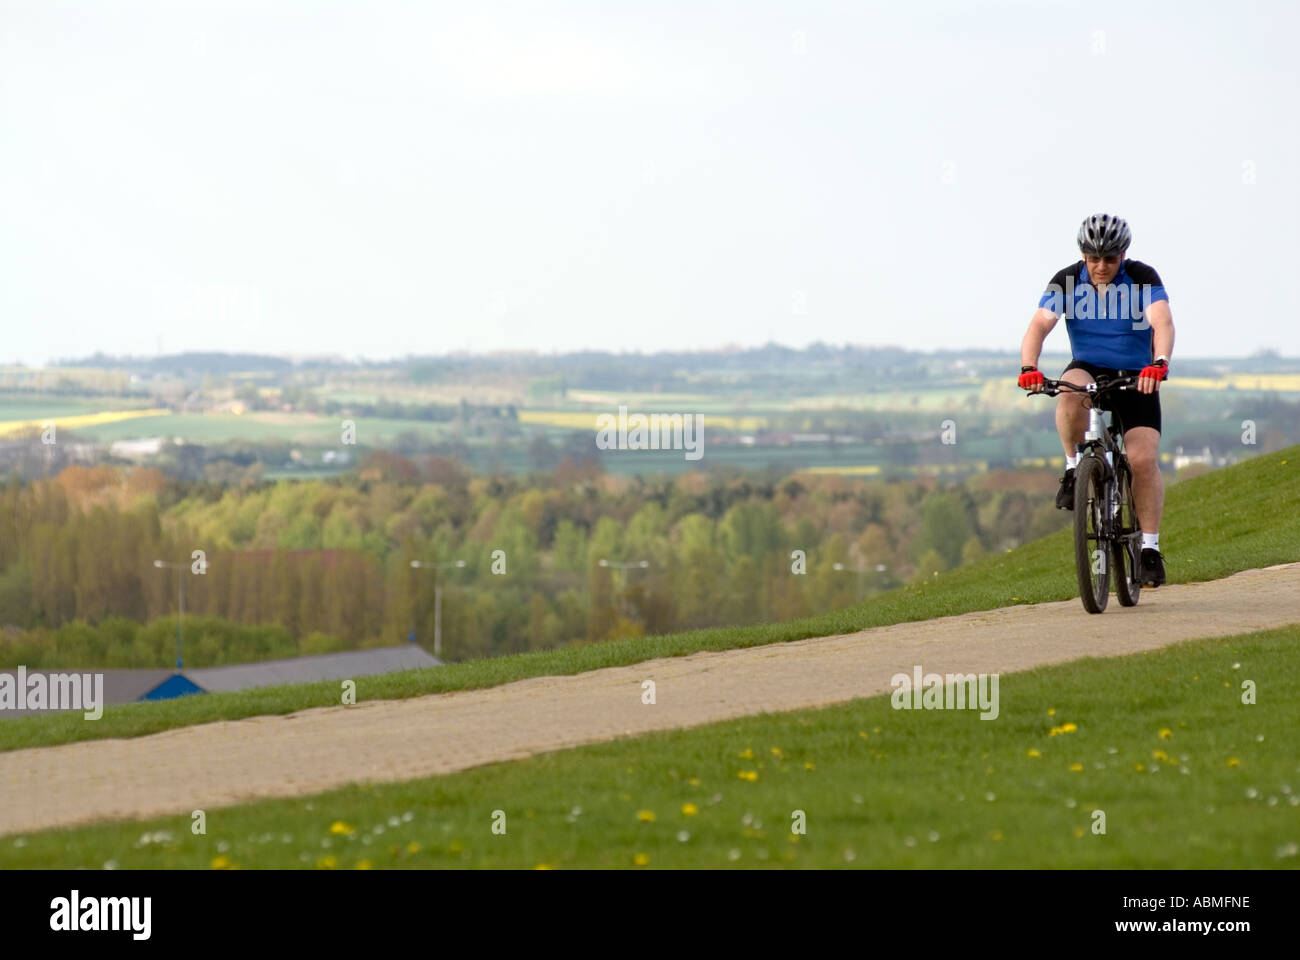 Mountain biker at Camphill Park Central Milton Keynes - Stock Image